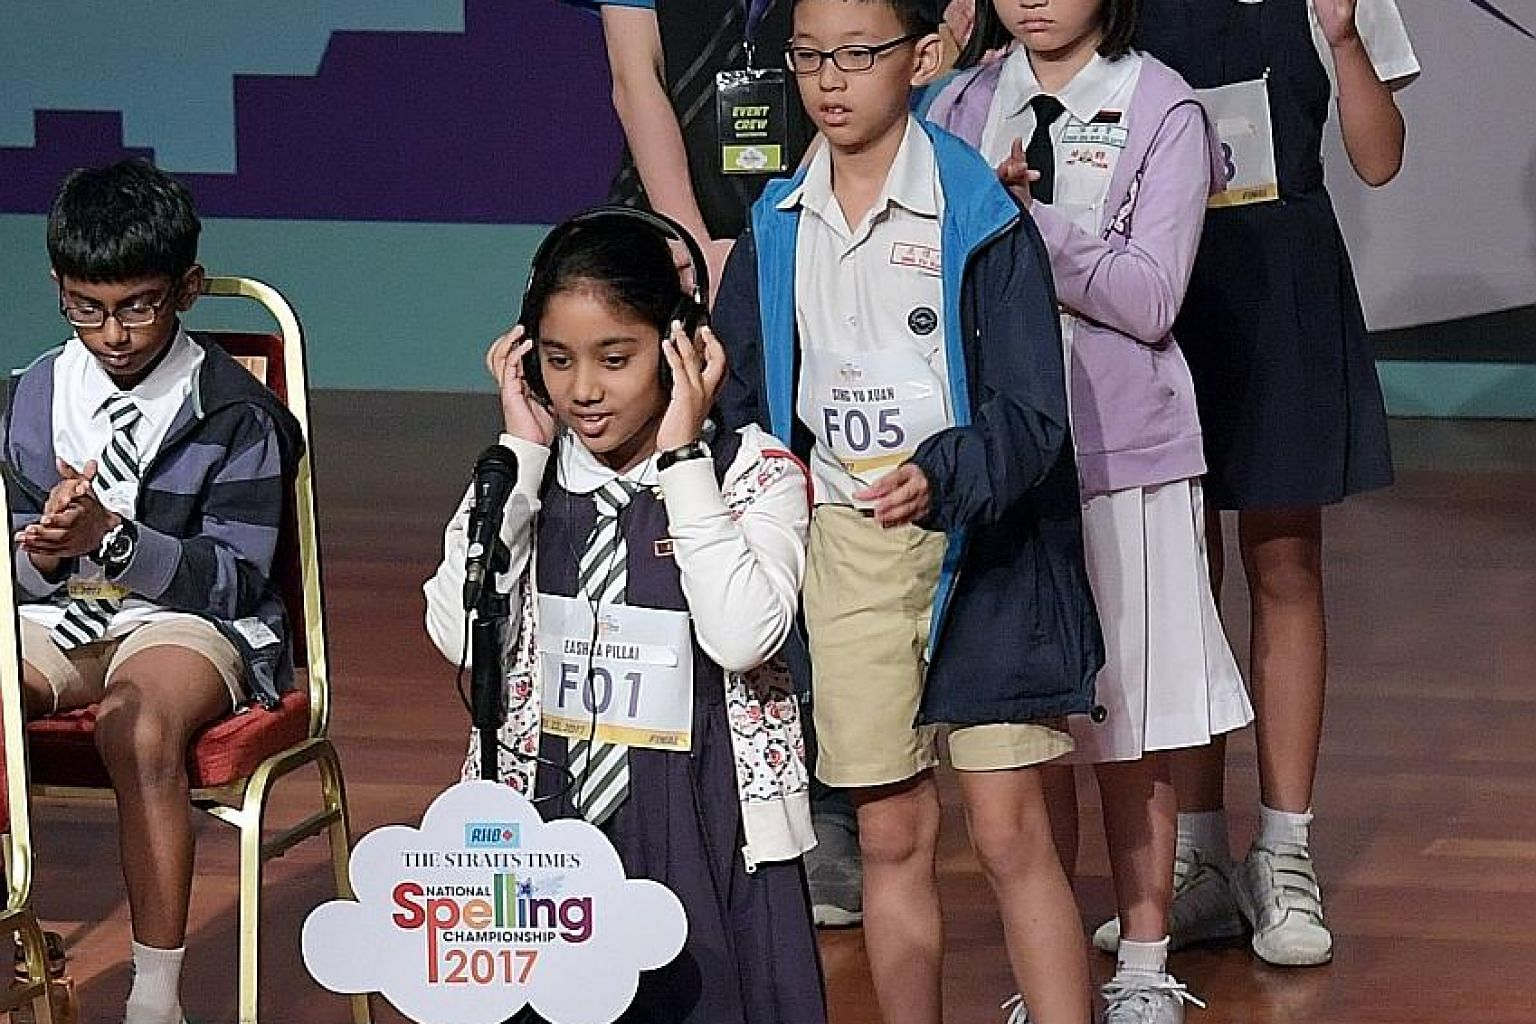 Competitors during the final round of the RHB-The Straits Times National Spelling Championship. Those who got knocked out in the earlier rounds remain in a holding area so they can be more easily recalled if there is a tussle for a lower-ranked spot.